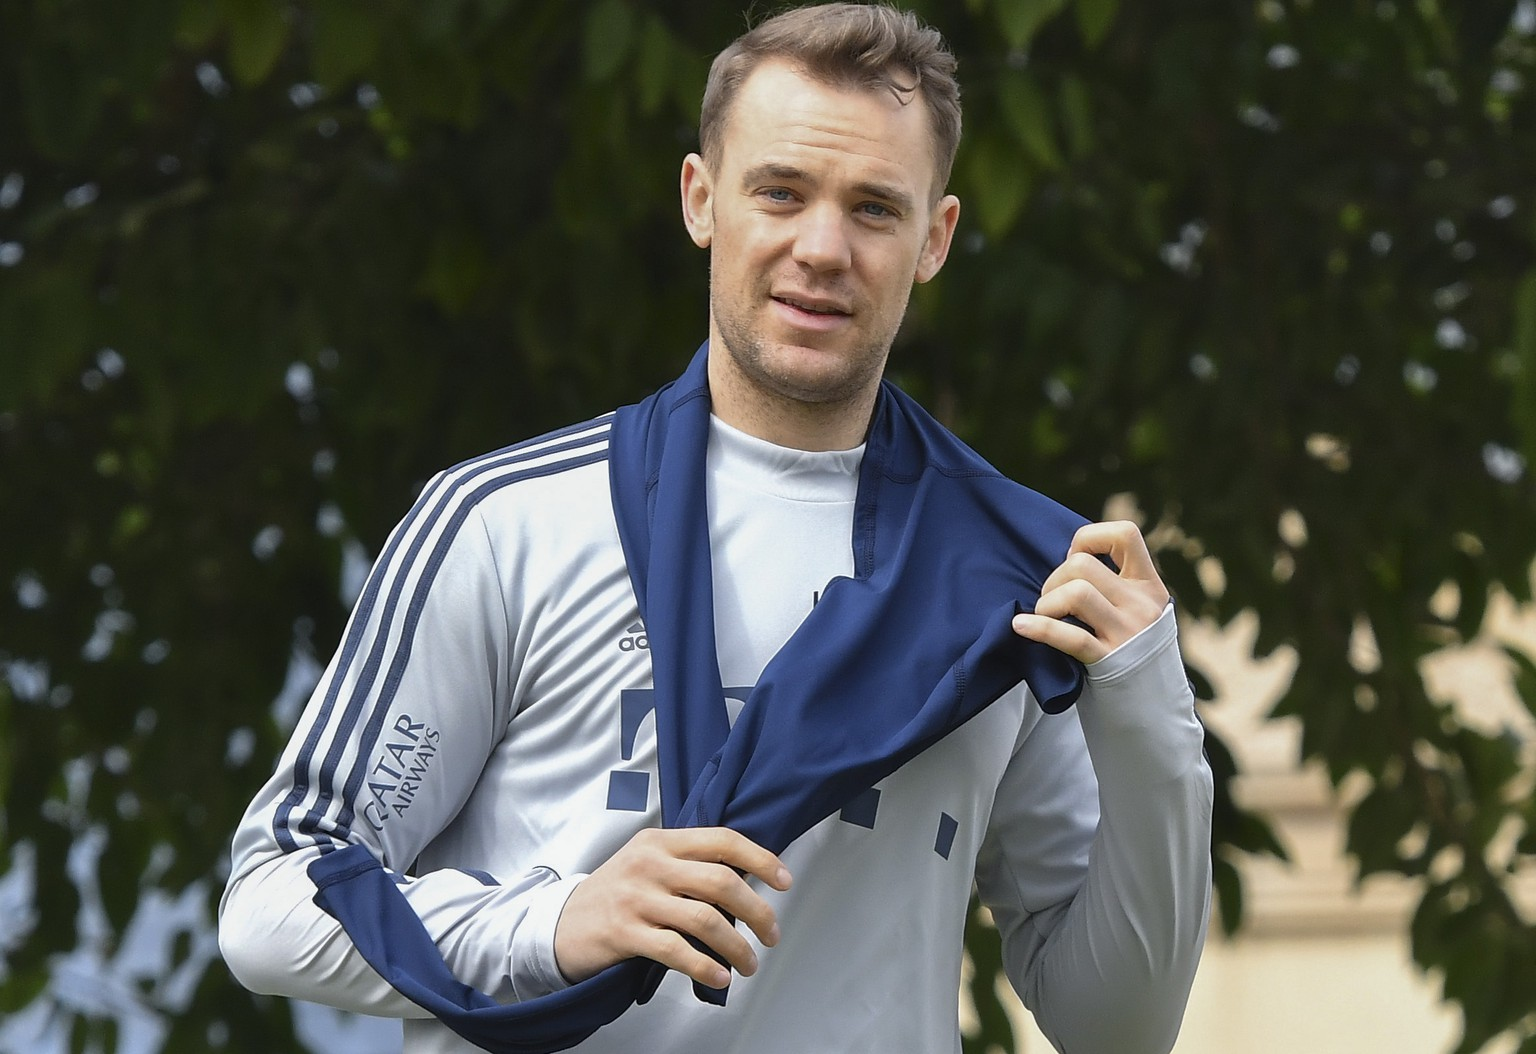 epa08104535 FC Bayern Muenchen goalkeeper Manuel Neuer arrives for a practice session during the team's winter training camp in Doha, Qatar, 05 January 2020. Bayern Munich holds the training camp until 10 January 2020.  EPA/NOUSHAD THEKKAYIL